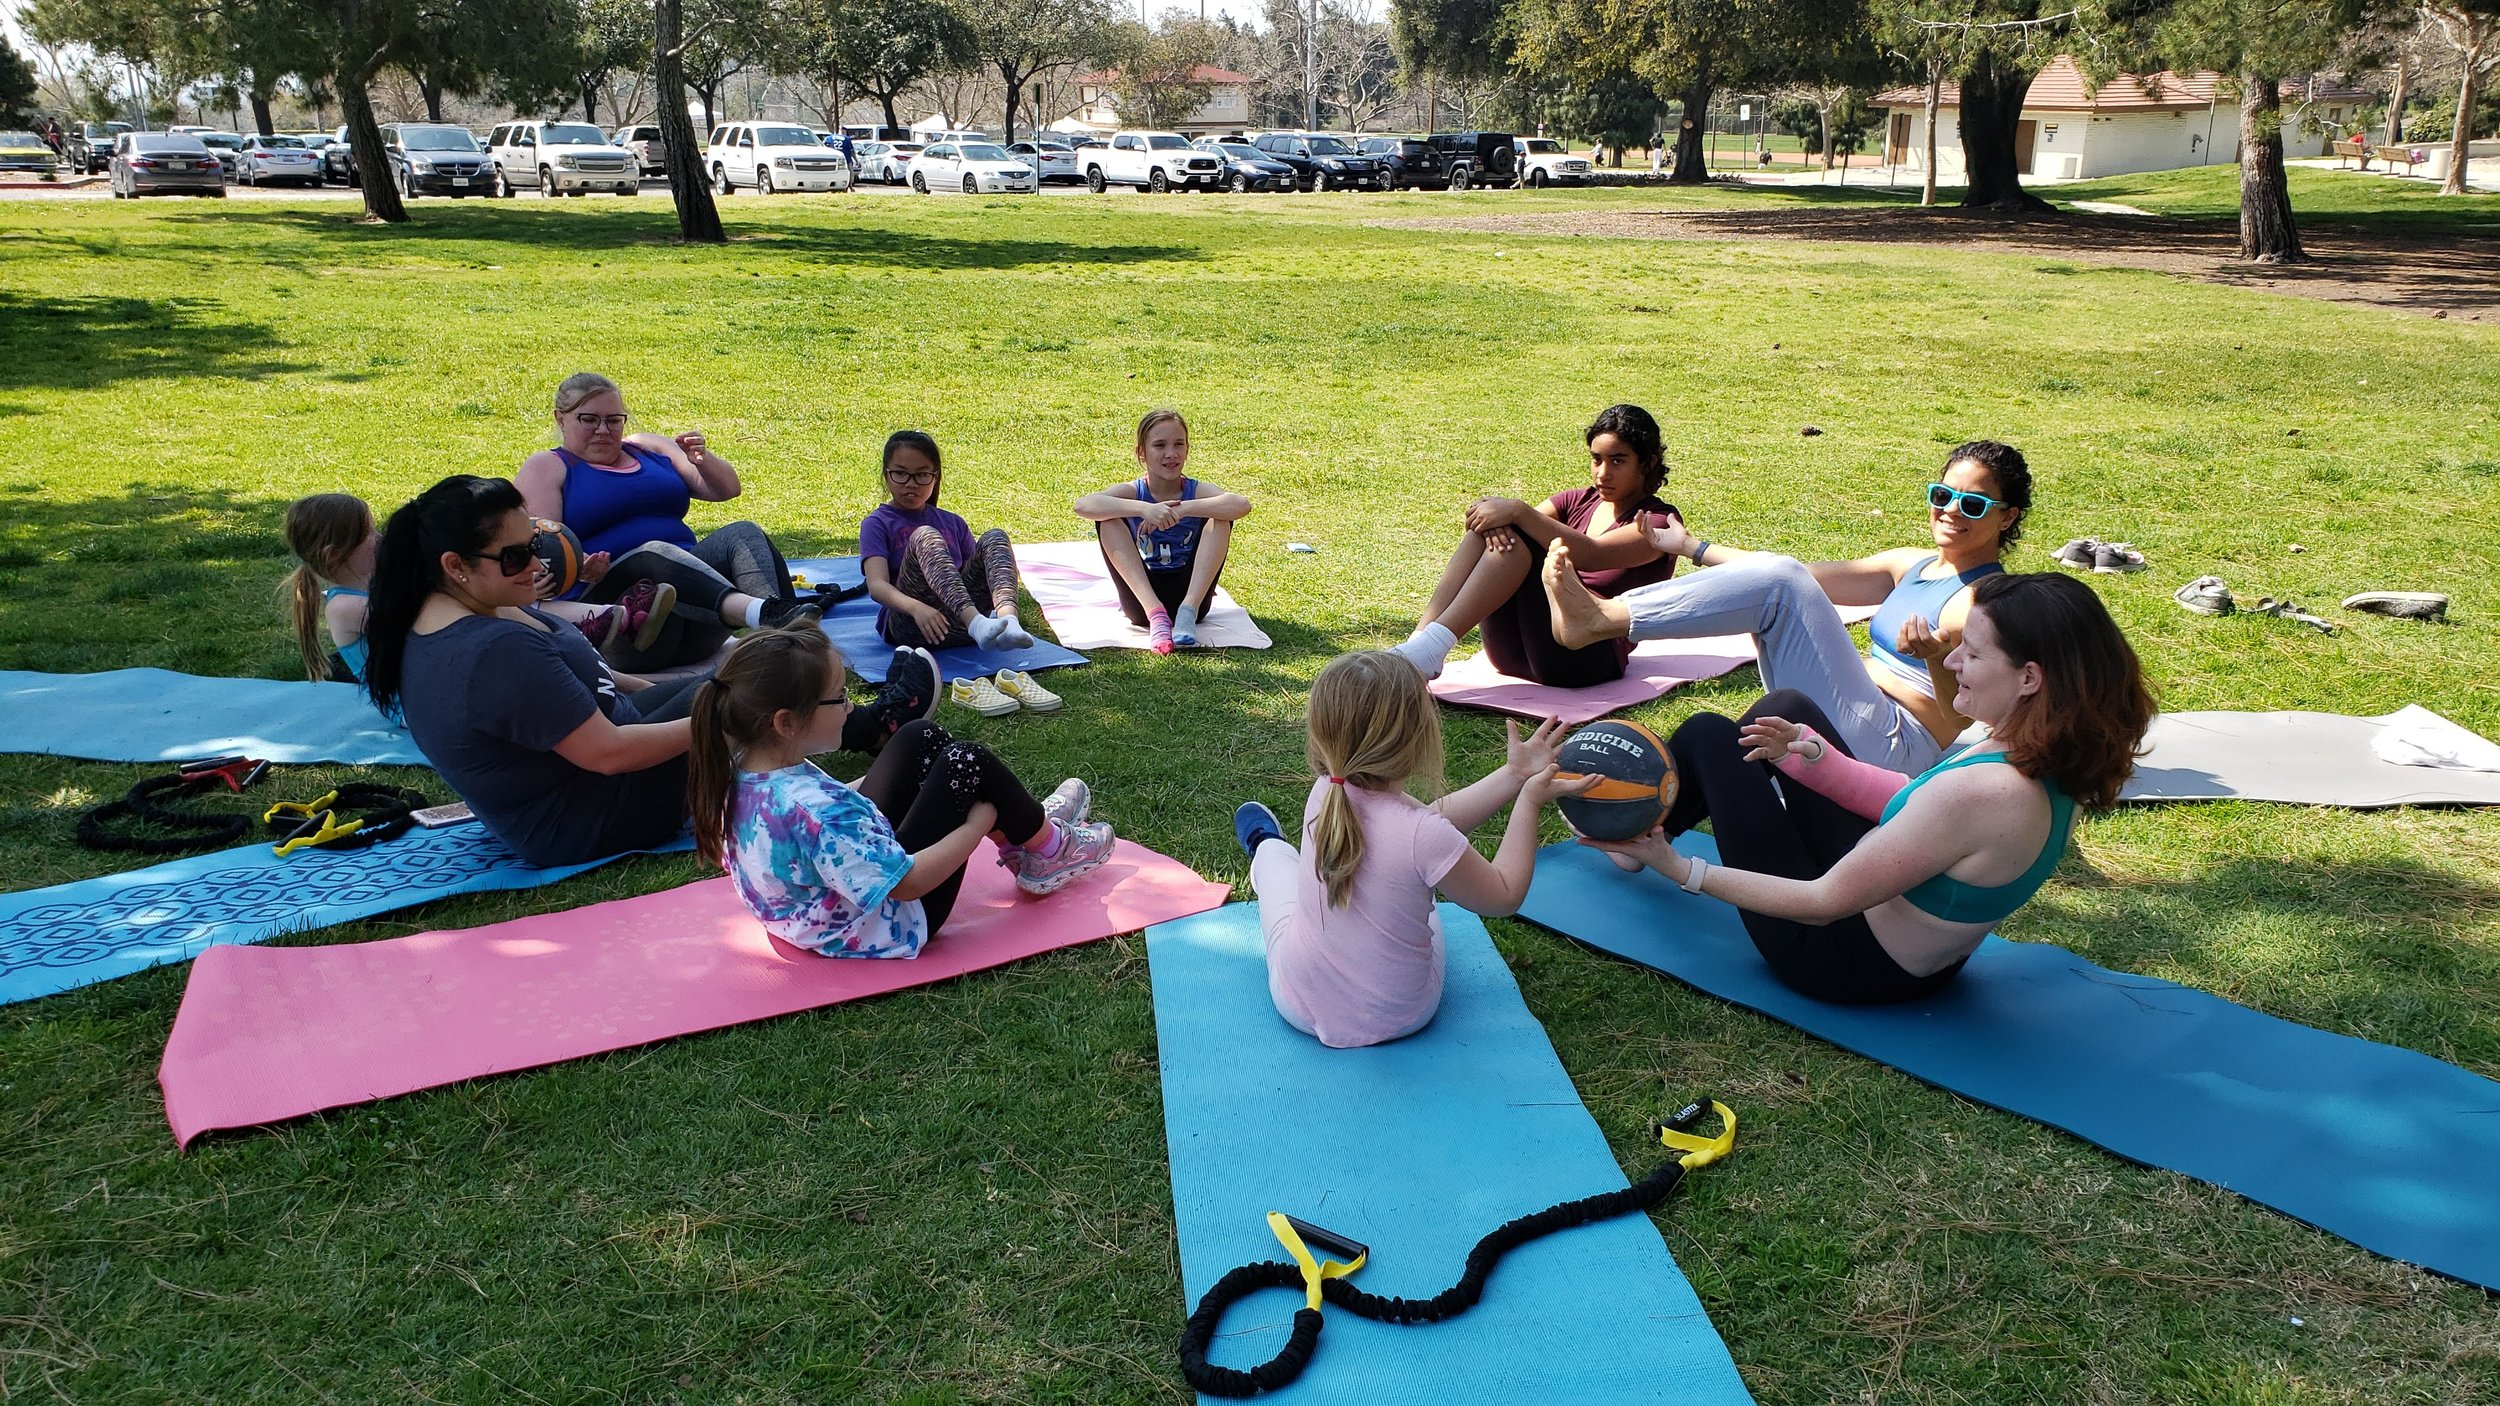 """Girls Scout - Badge Event""""Fitness For Fun"""" - Participants (parents and scouts) get to engage in a two hour recreational fitness event that challenges the body and mind. Learning the importance components of health and fitness.This is a private party event. Any one can participate!"""